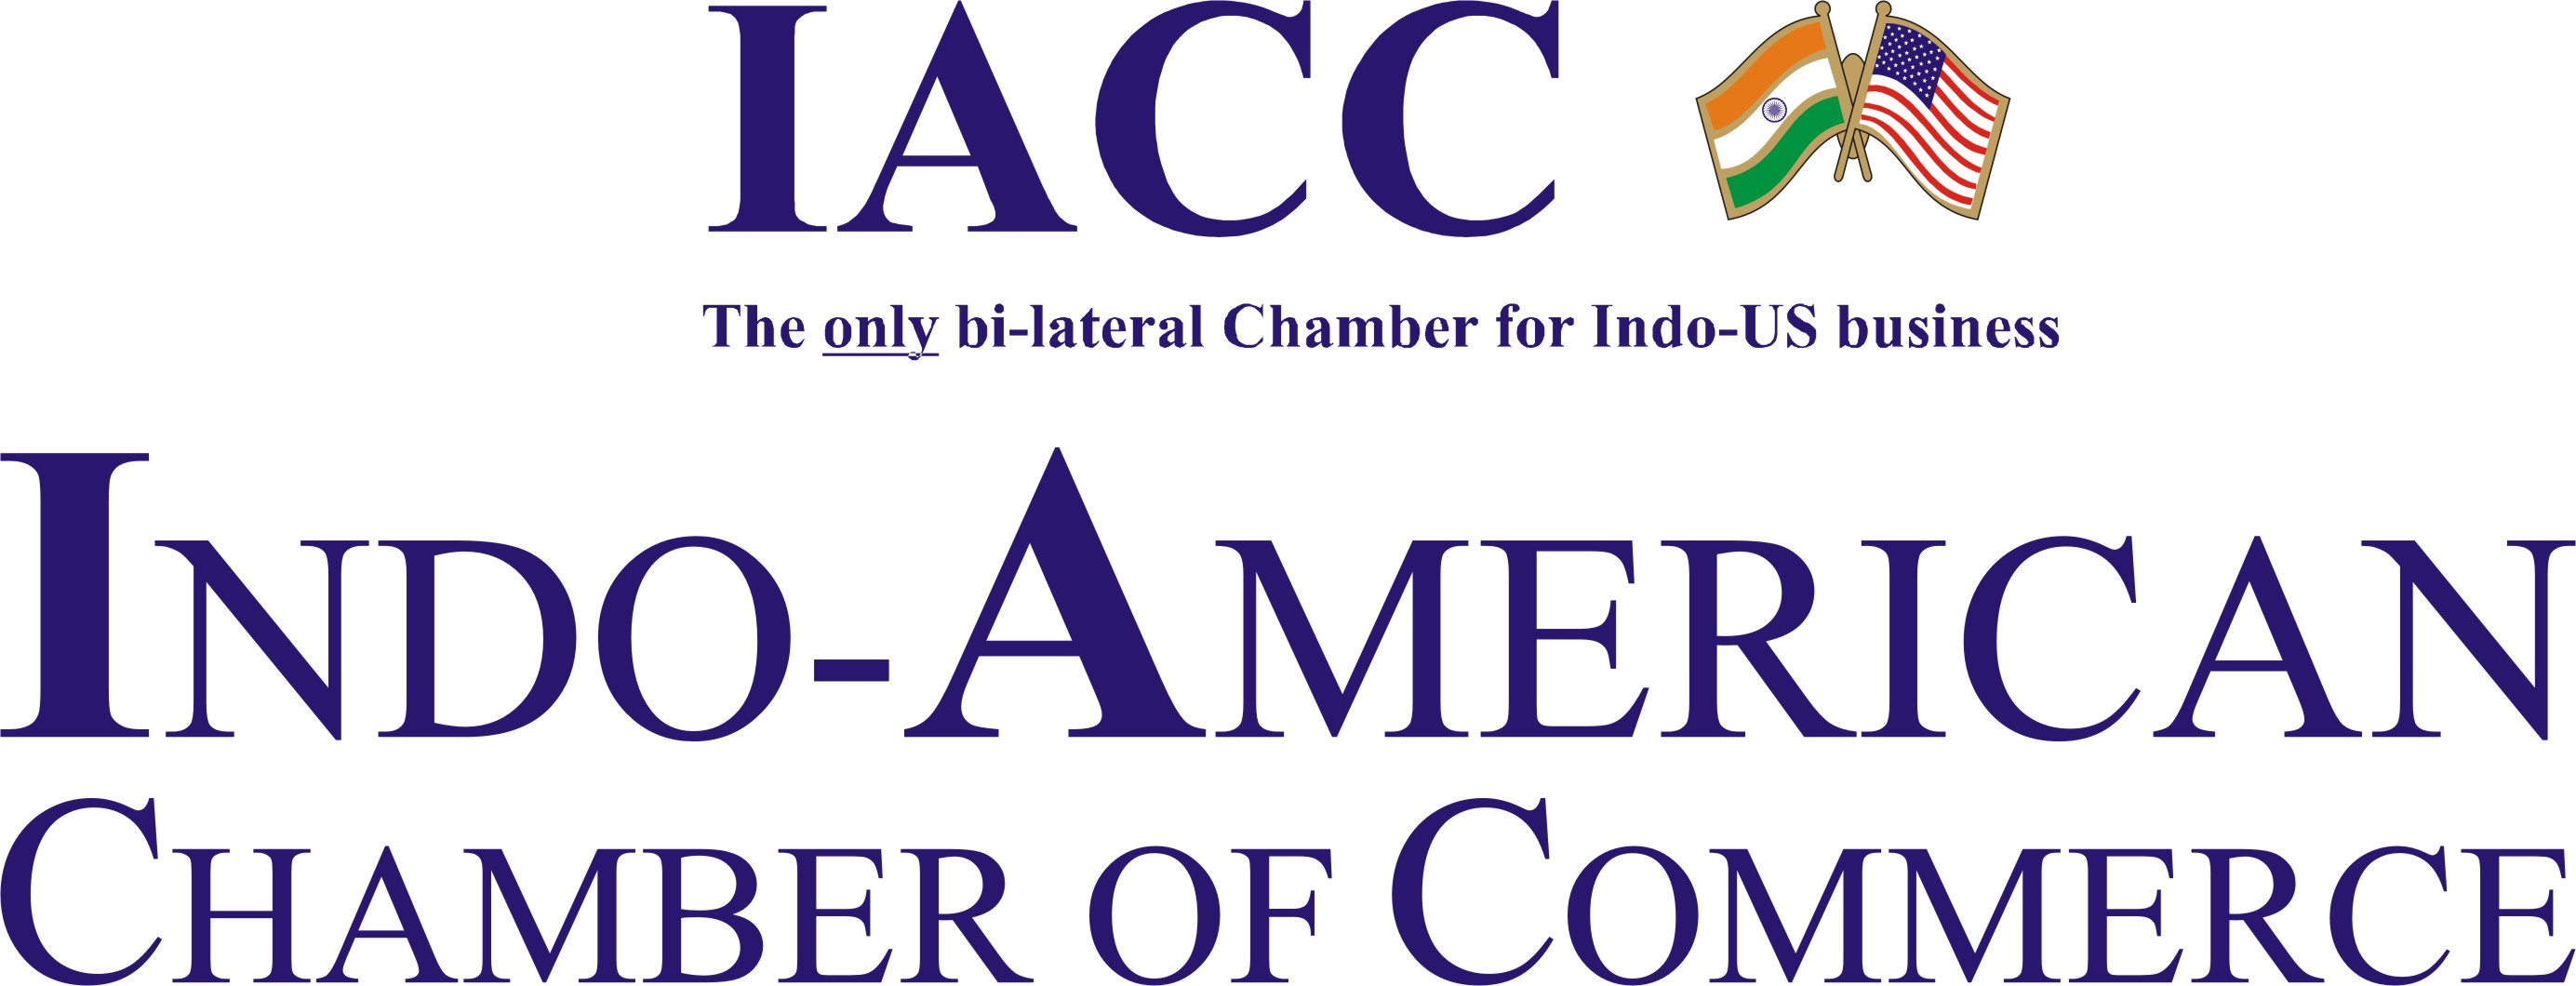 american companies in india